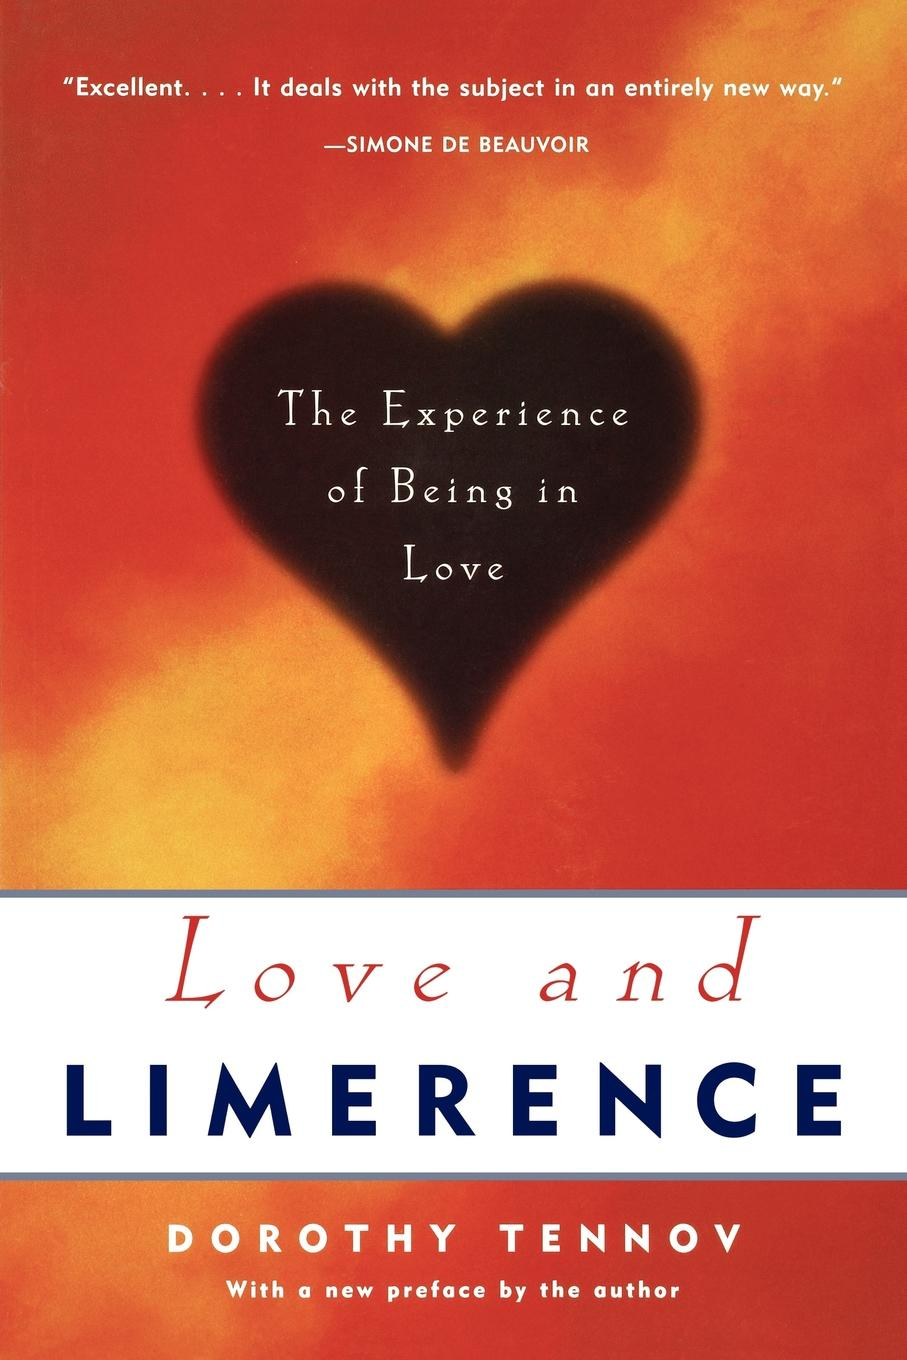 Love and Limerence By: Dorothy Tennov